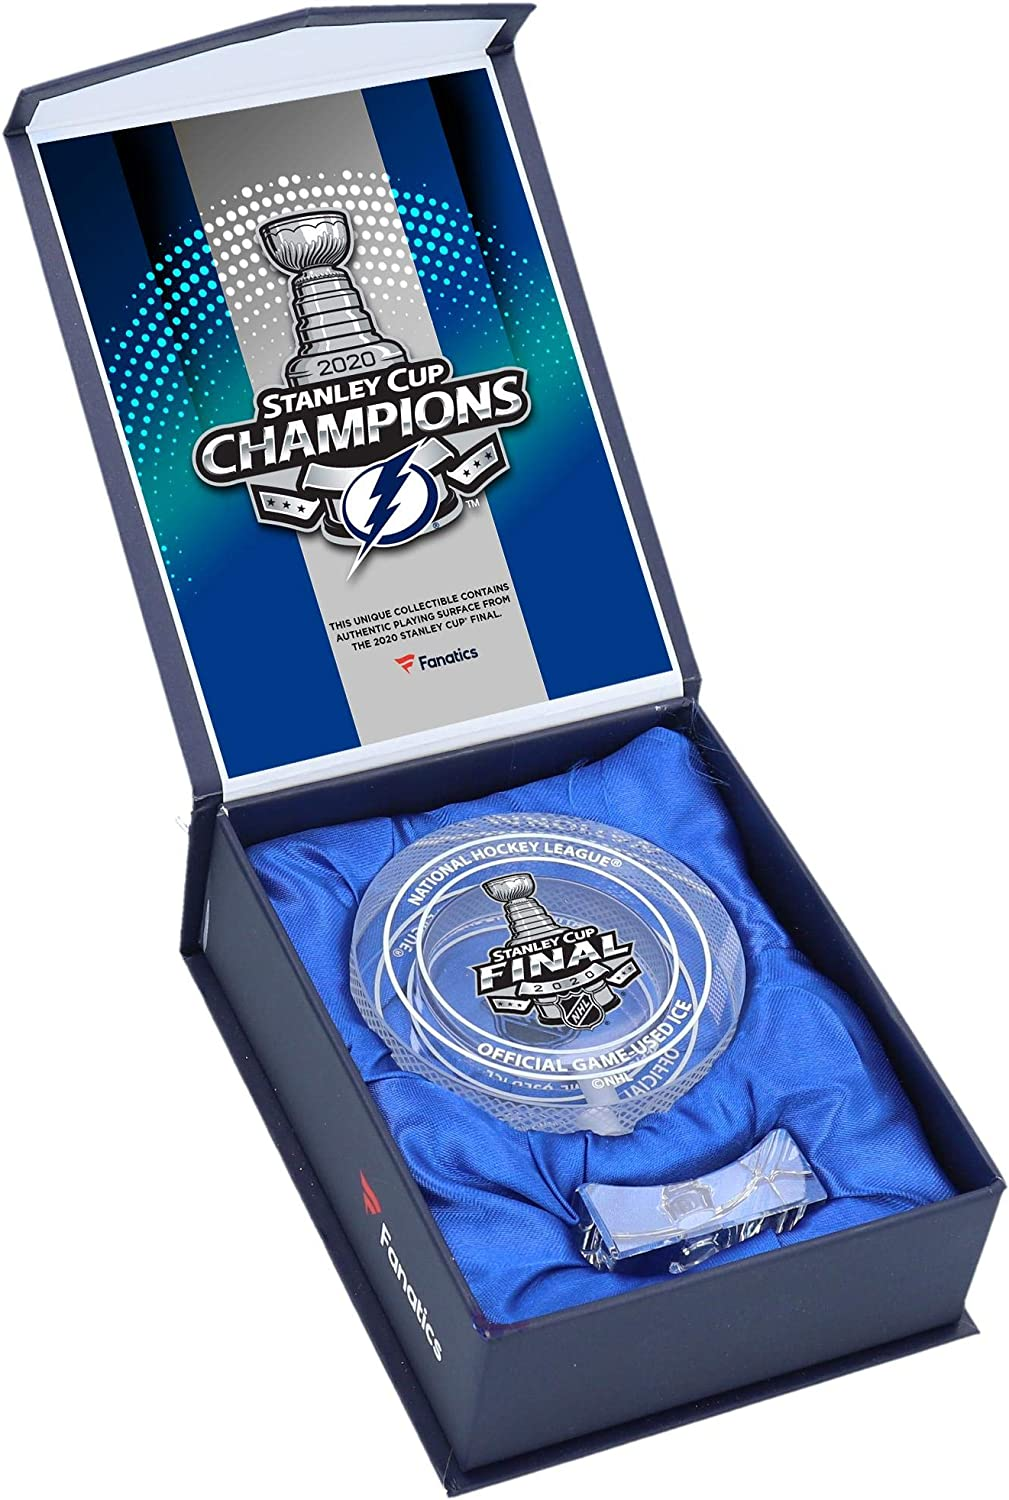 Tampa Bay Lightning 2020 Stanley Cup Champions Crystal Hockey Puck - Filled with Ice From the 2020 Stanley Cup Final - NHL Game Used Ice Collages